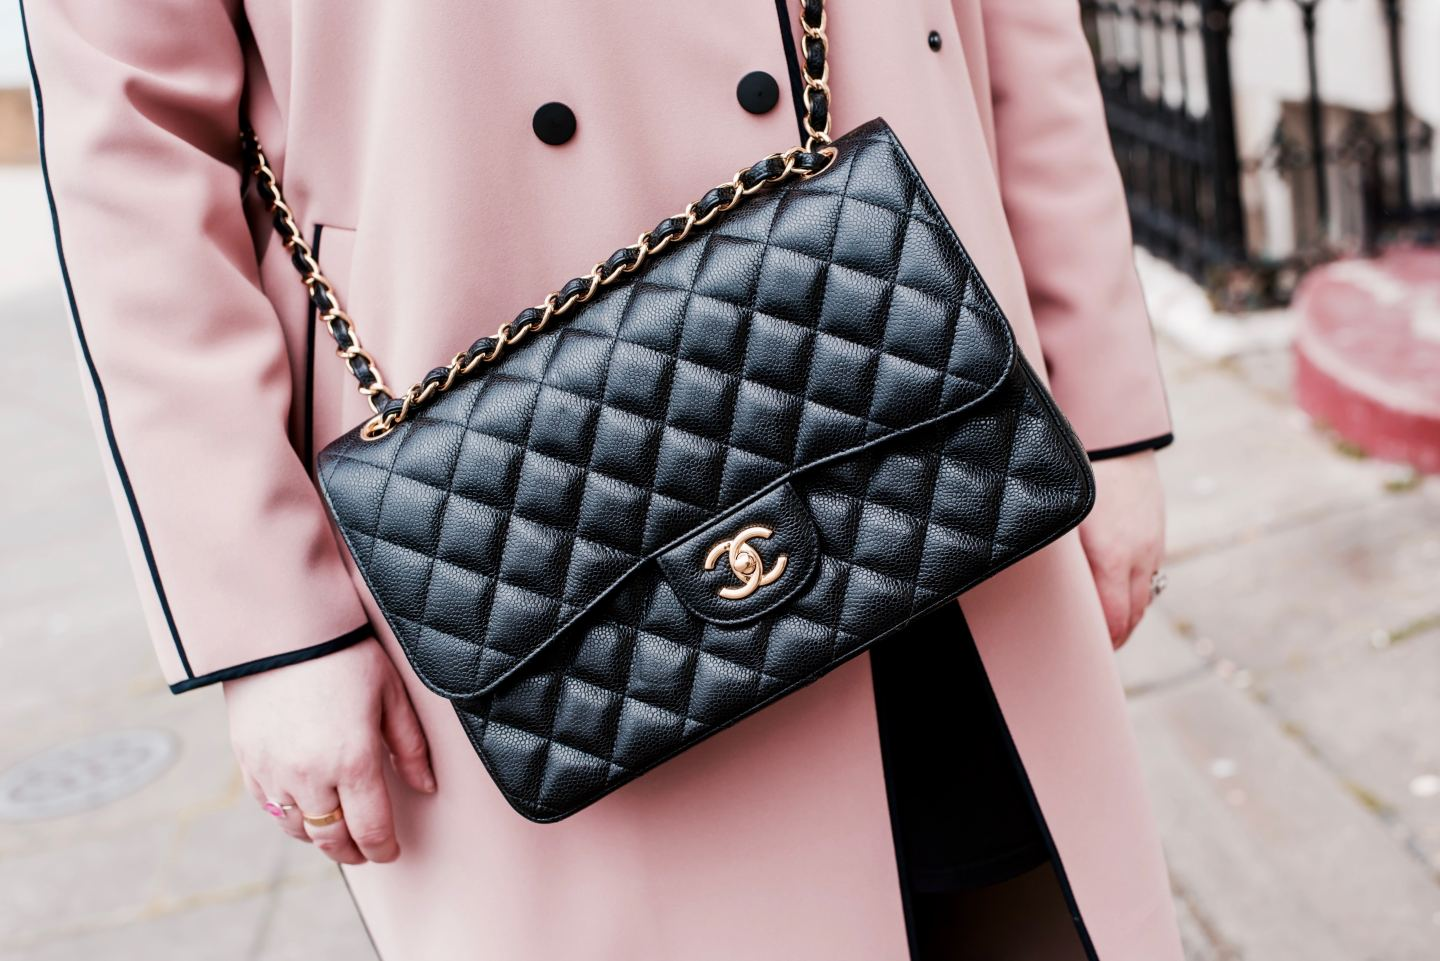 What Fits In A Chanel Jumbo Bag? gold hardware